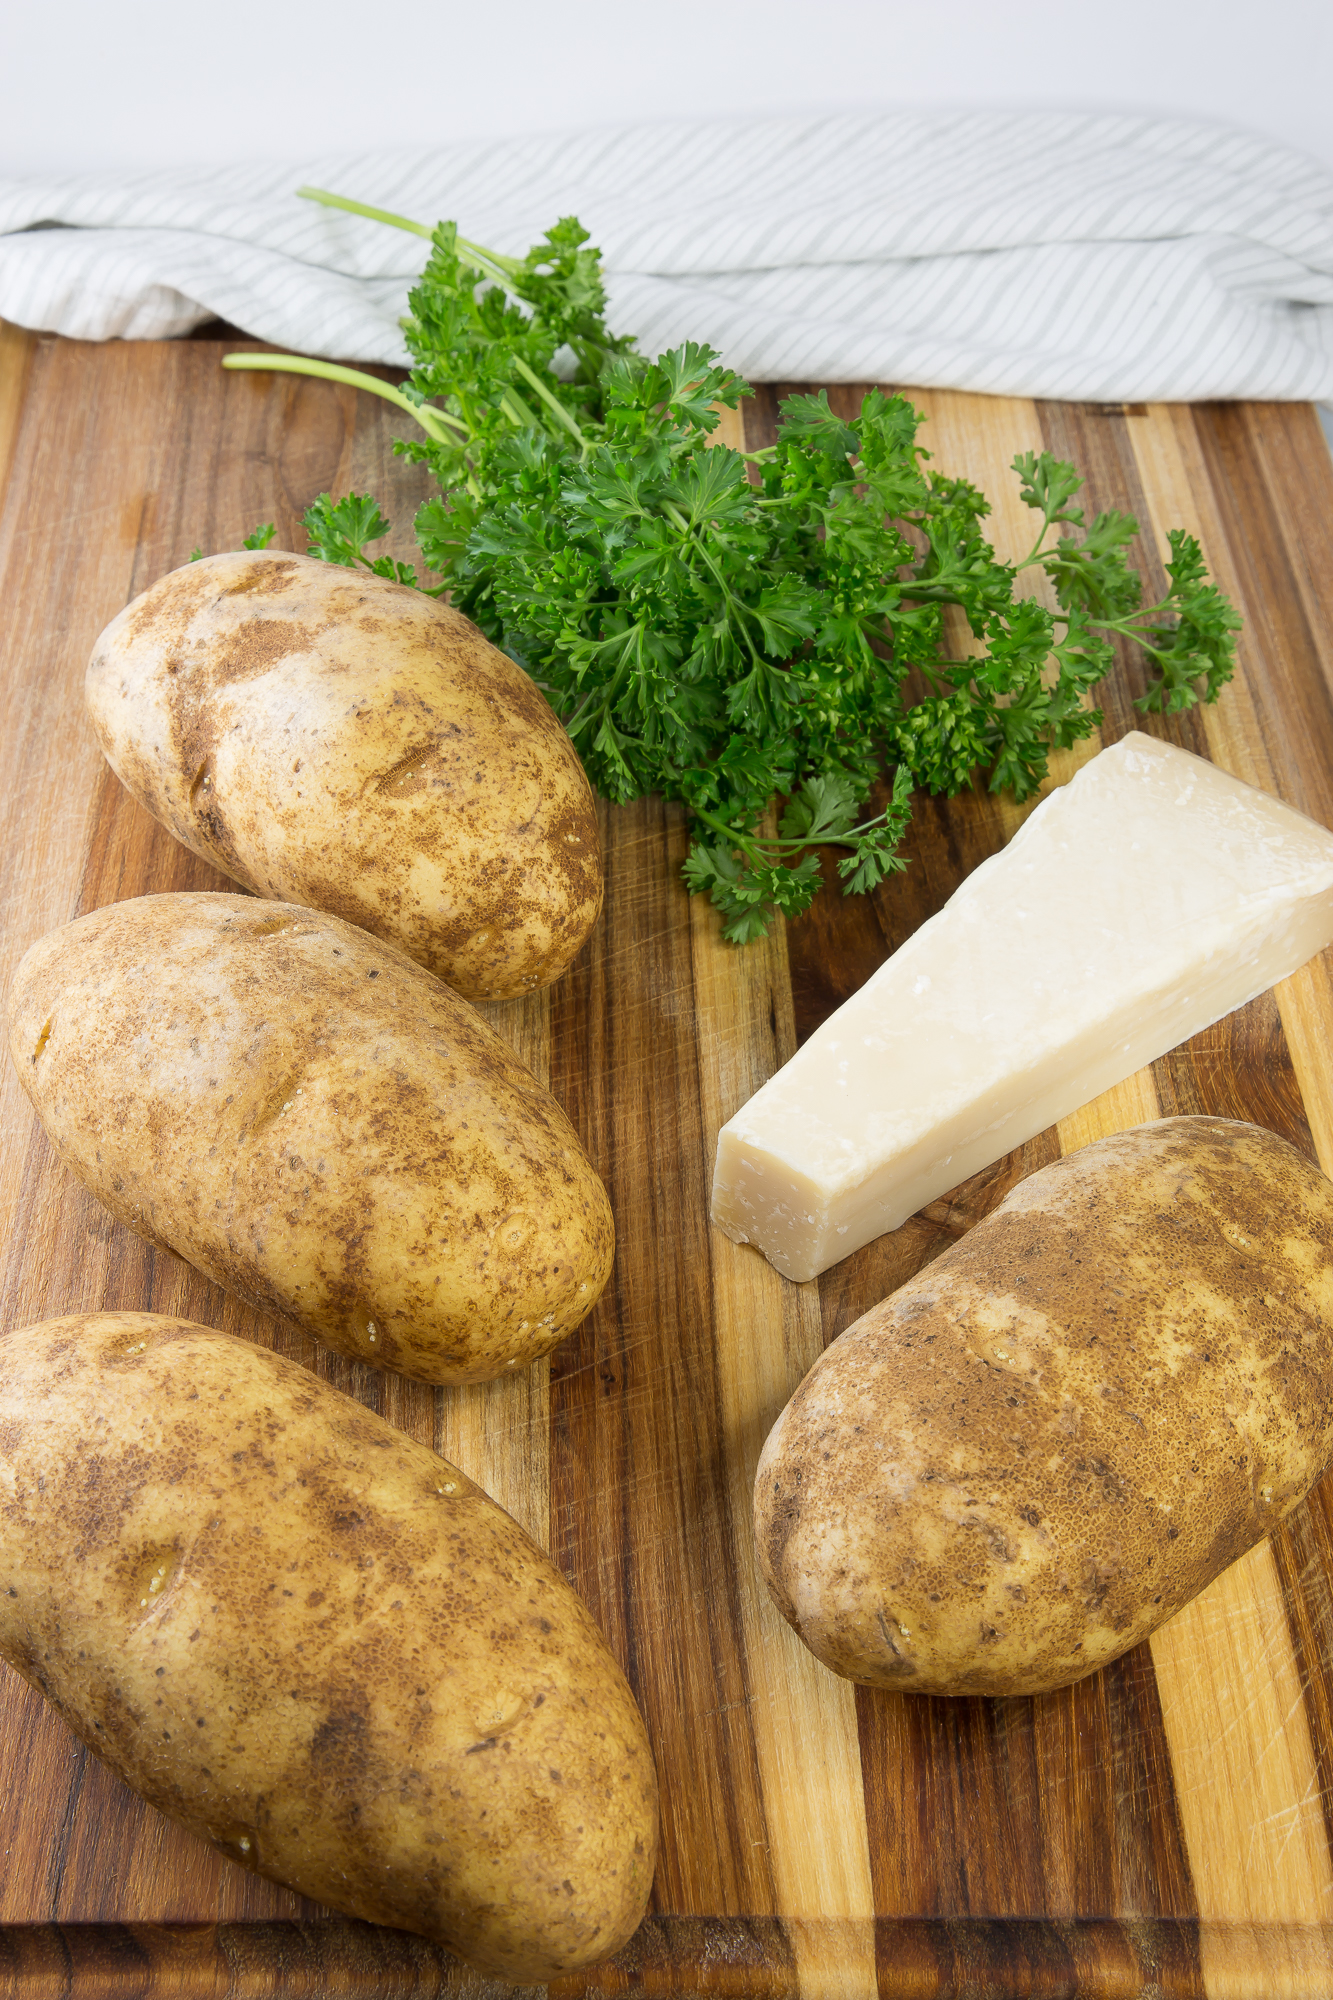 russet potatoes, parsley, and parm on a cutting board